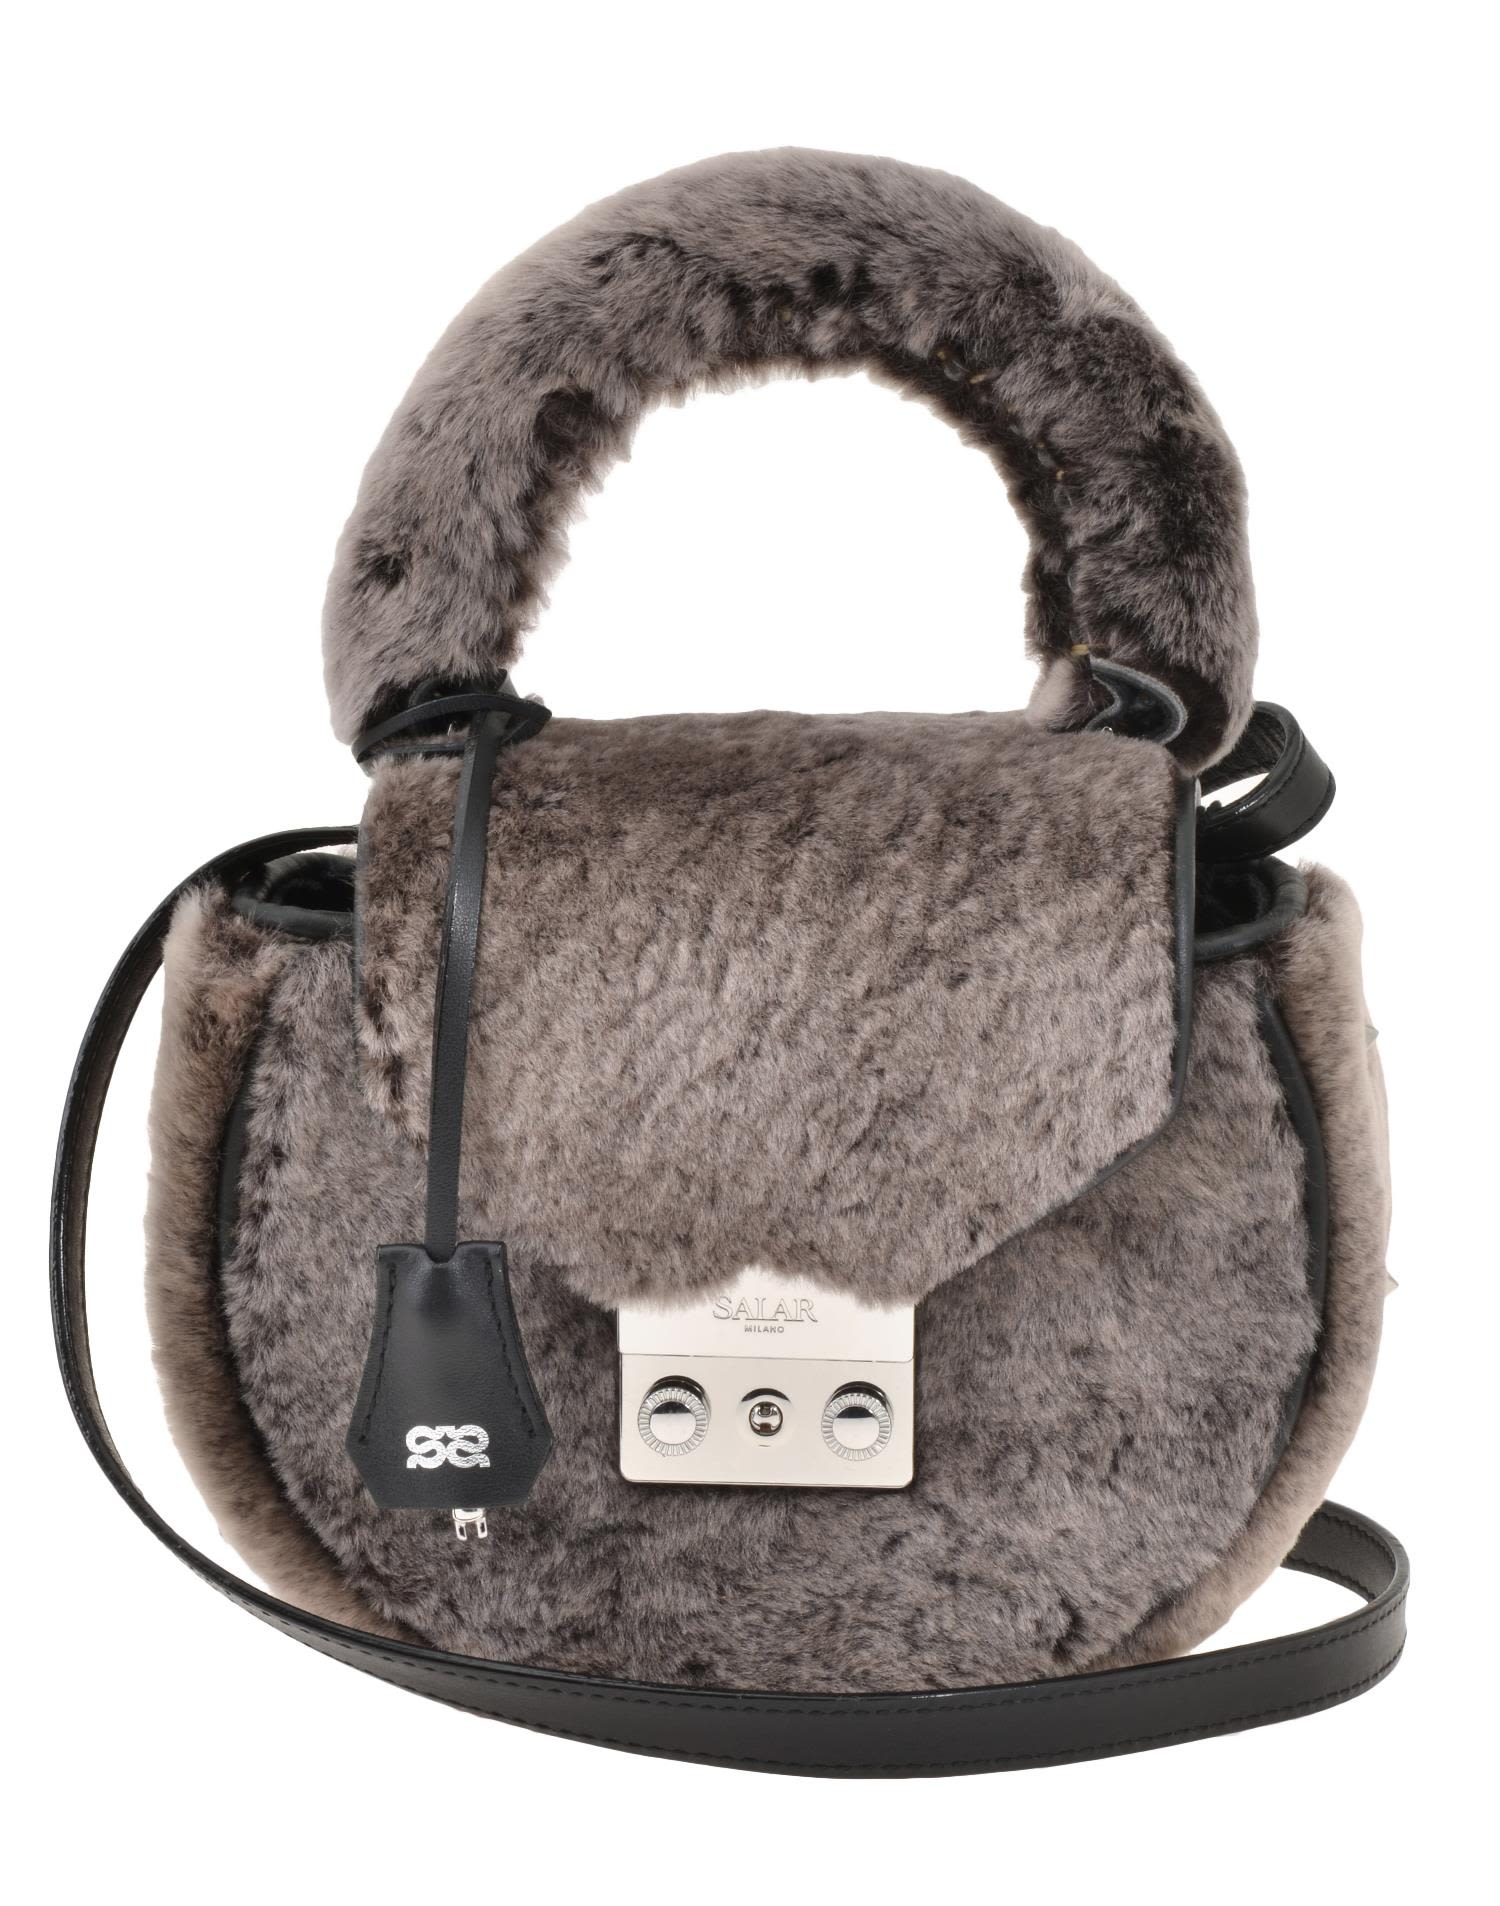 Salar Mimi Teddy Bag